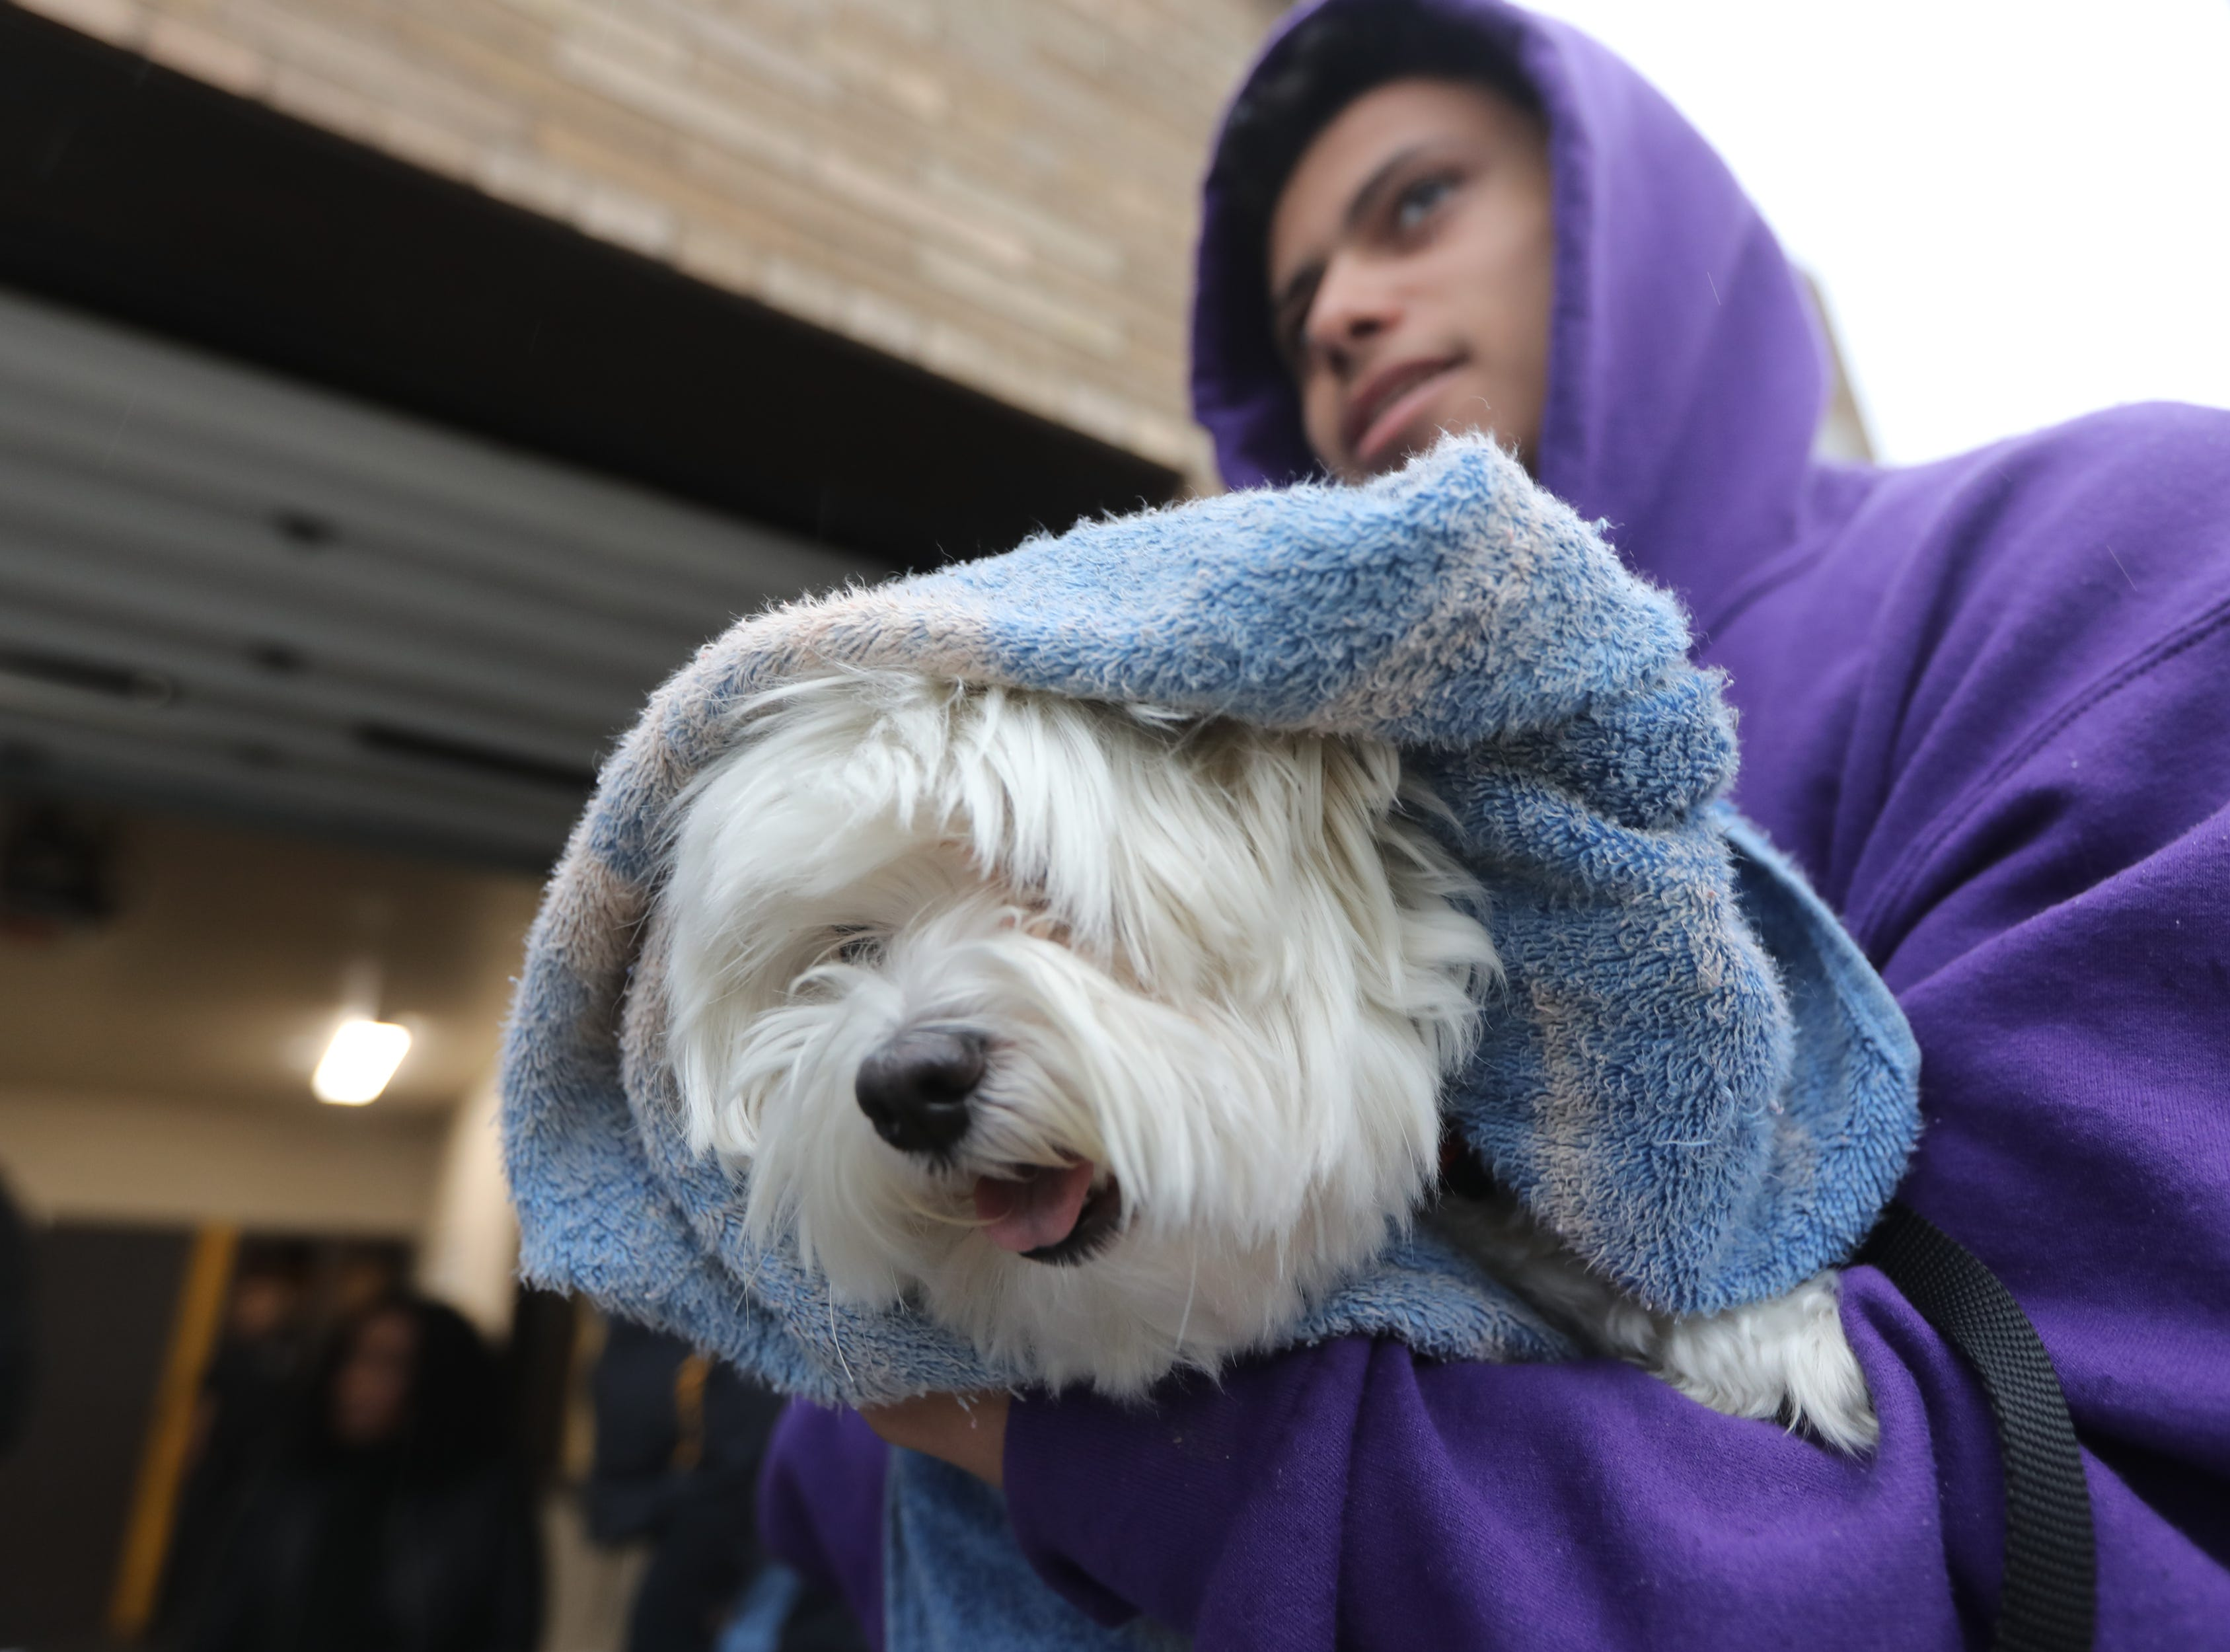 Keno is held by Justin Tanco while on line to get vaccinated. People came out to the Riverside Firehouse in Paterson, Tuesday, May 14, 2019, to get free rabies vaccinations for their cats and dogs.  The 44th annual clinic continues Thursday at 128 Getty Ave. and Friday at 300 McBride Ave. from 7-8pm.  It concludes over the weekend, Saturday from 12:30-1:30pm at Firehouse No.4 on Temple St.  Sunday it is back at Riverhouse Firehouse at East 16th St. and Lafayette from 10:30 until noon.